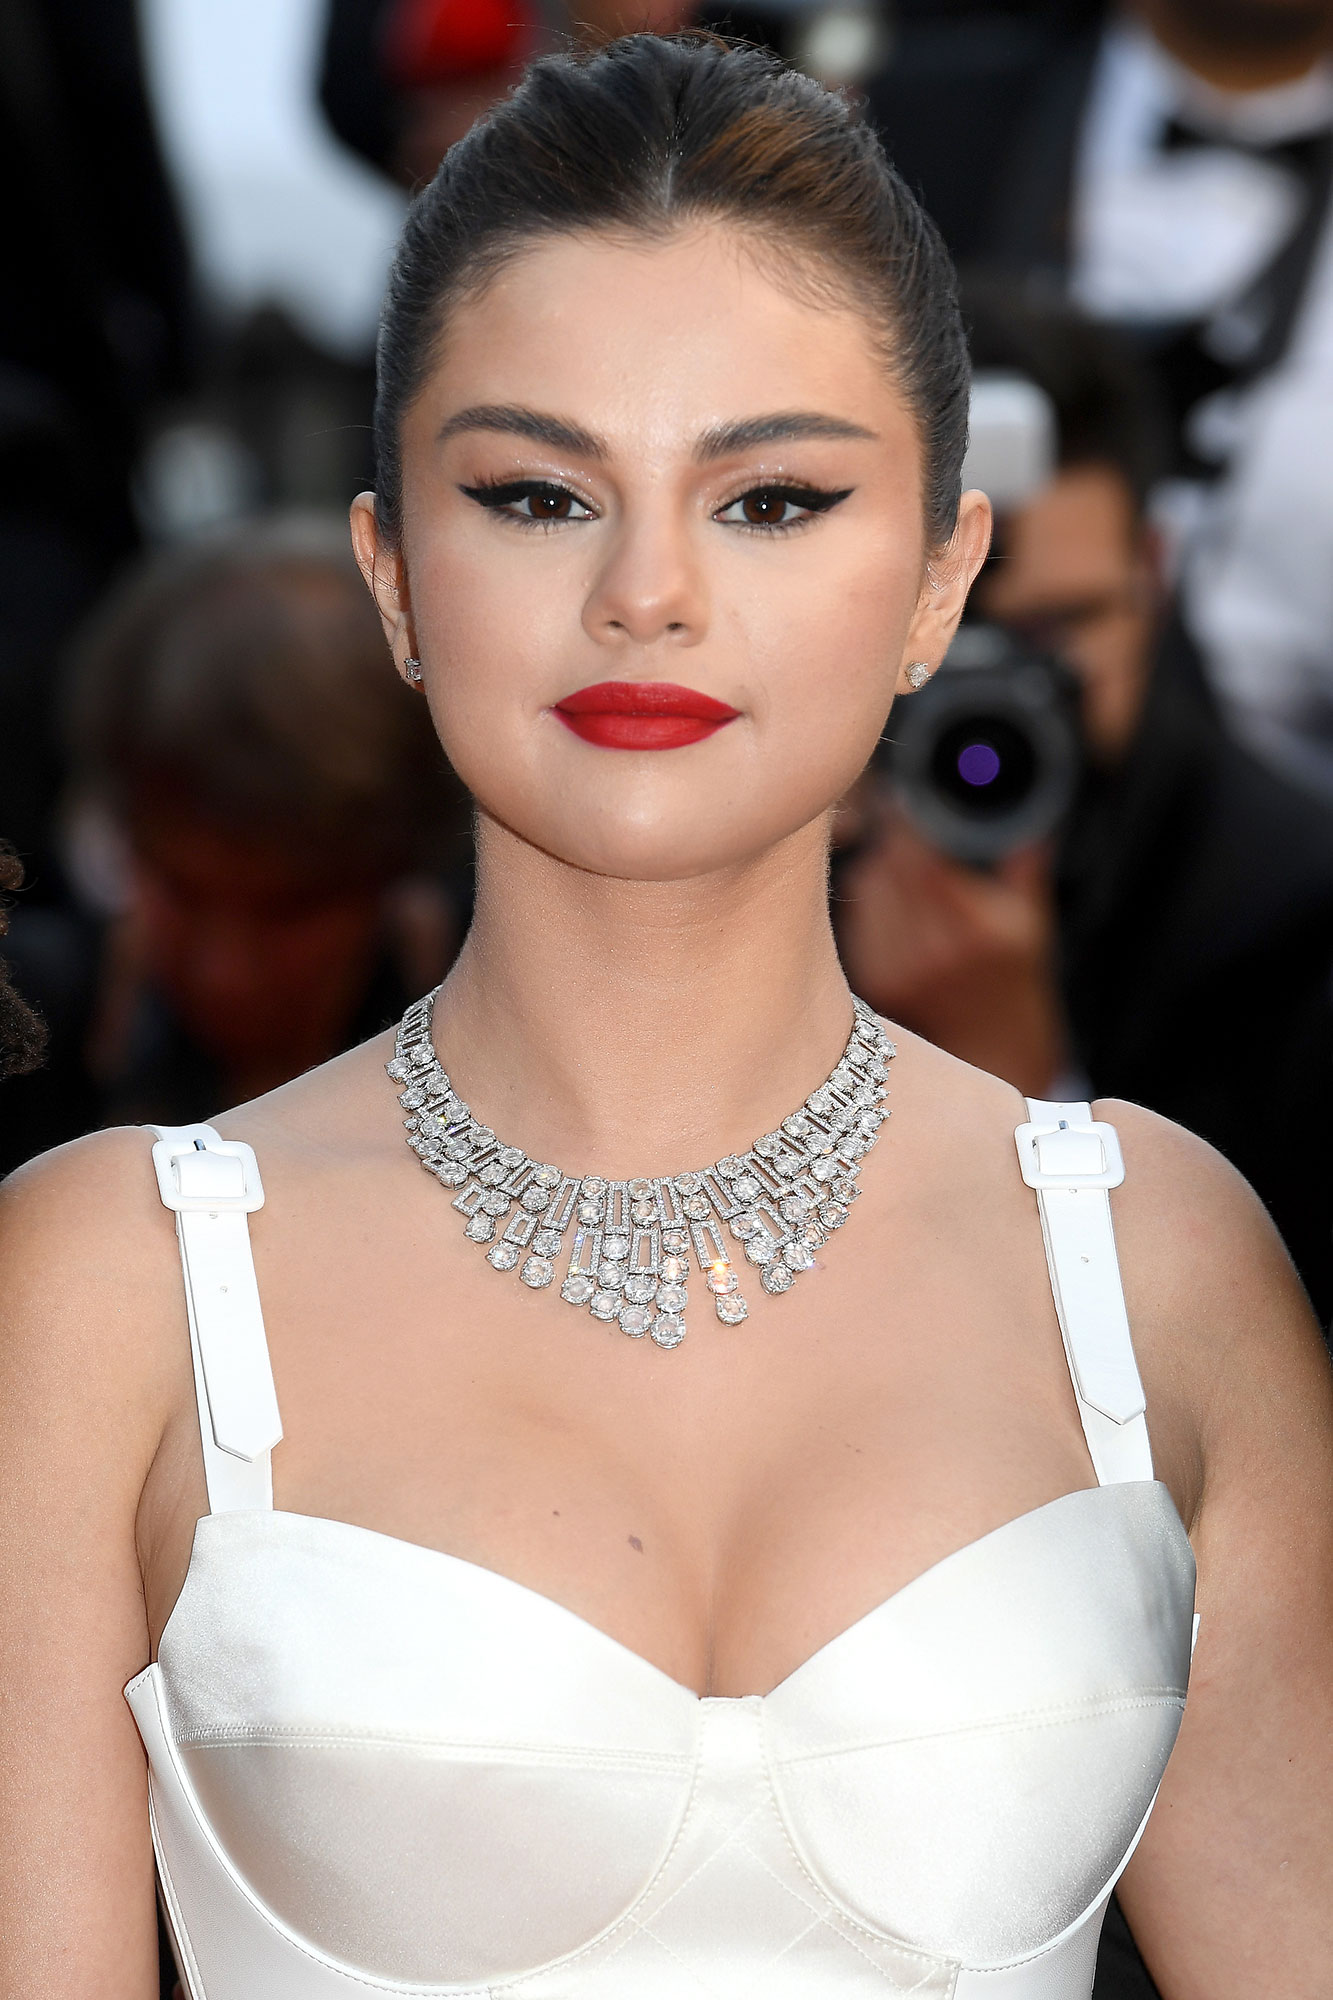 Selena Gomez Cannes - The High Jewelry Cinemagia from Bulgari paired with the matching ring totalled over 100 carats in diamonds.